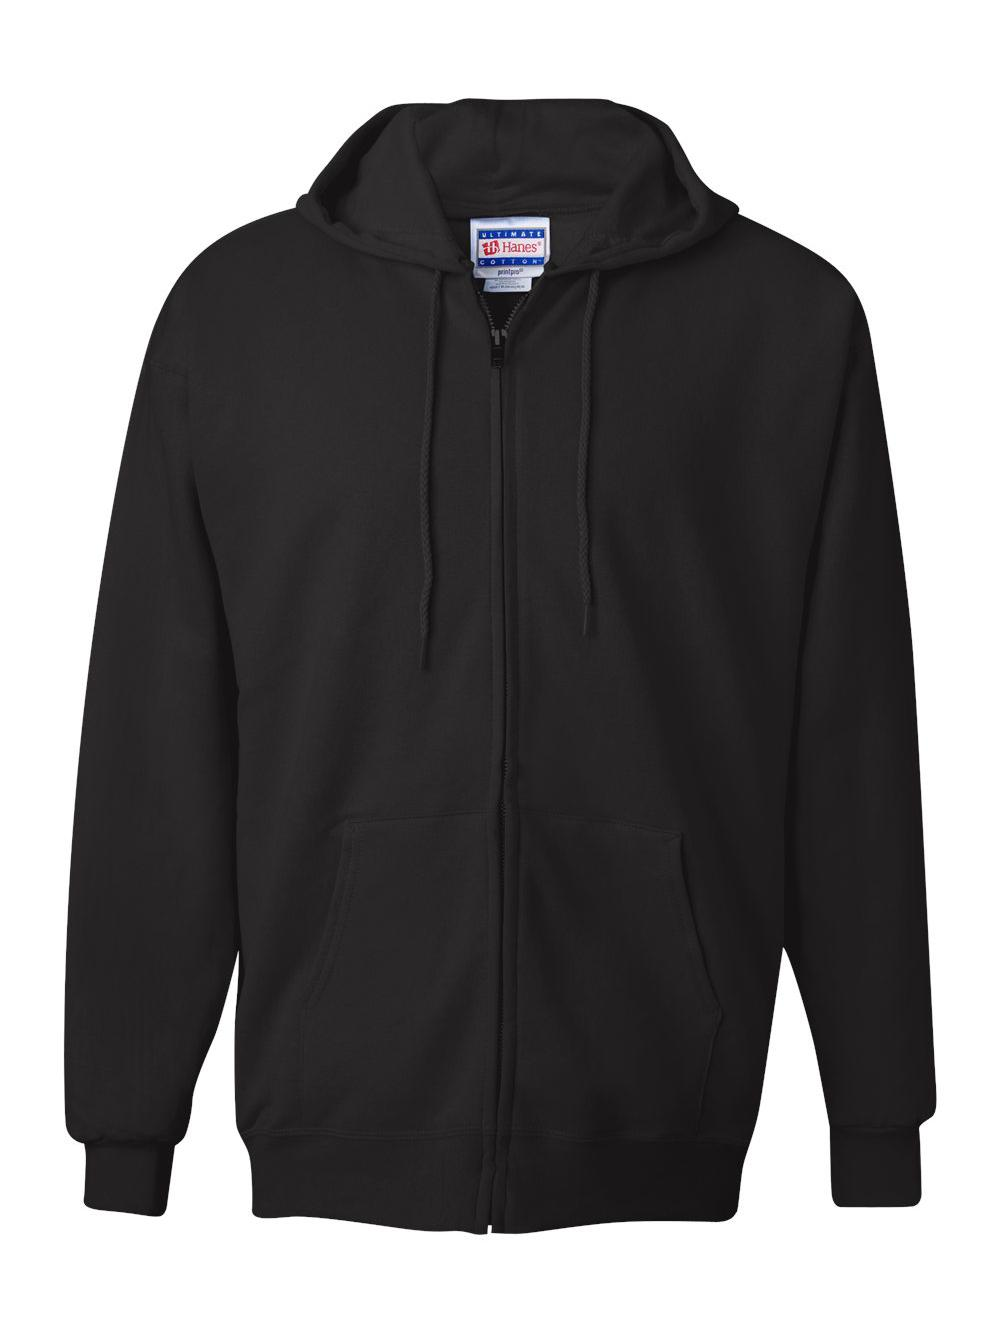 Hanes-Ultimate-Cotton-Full-Zip-Hooded-Sweatshirt-F280 thumbnail 3